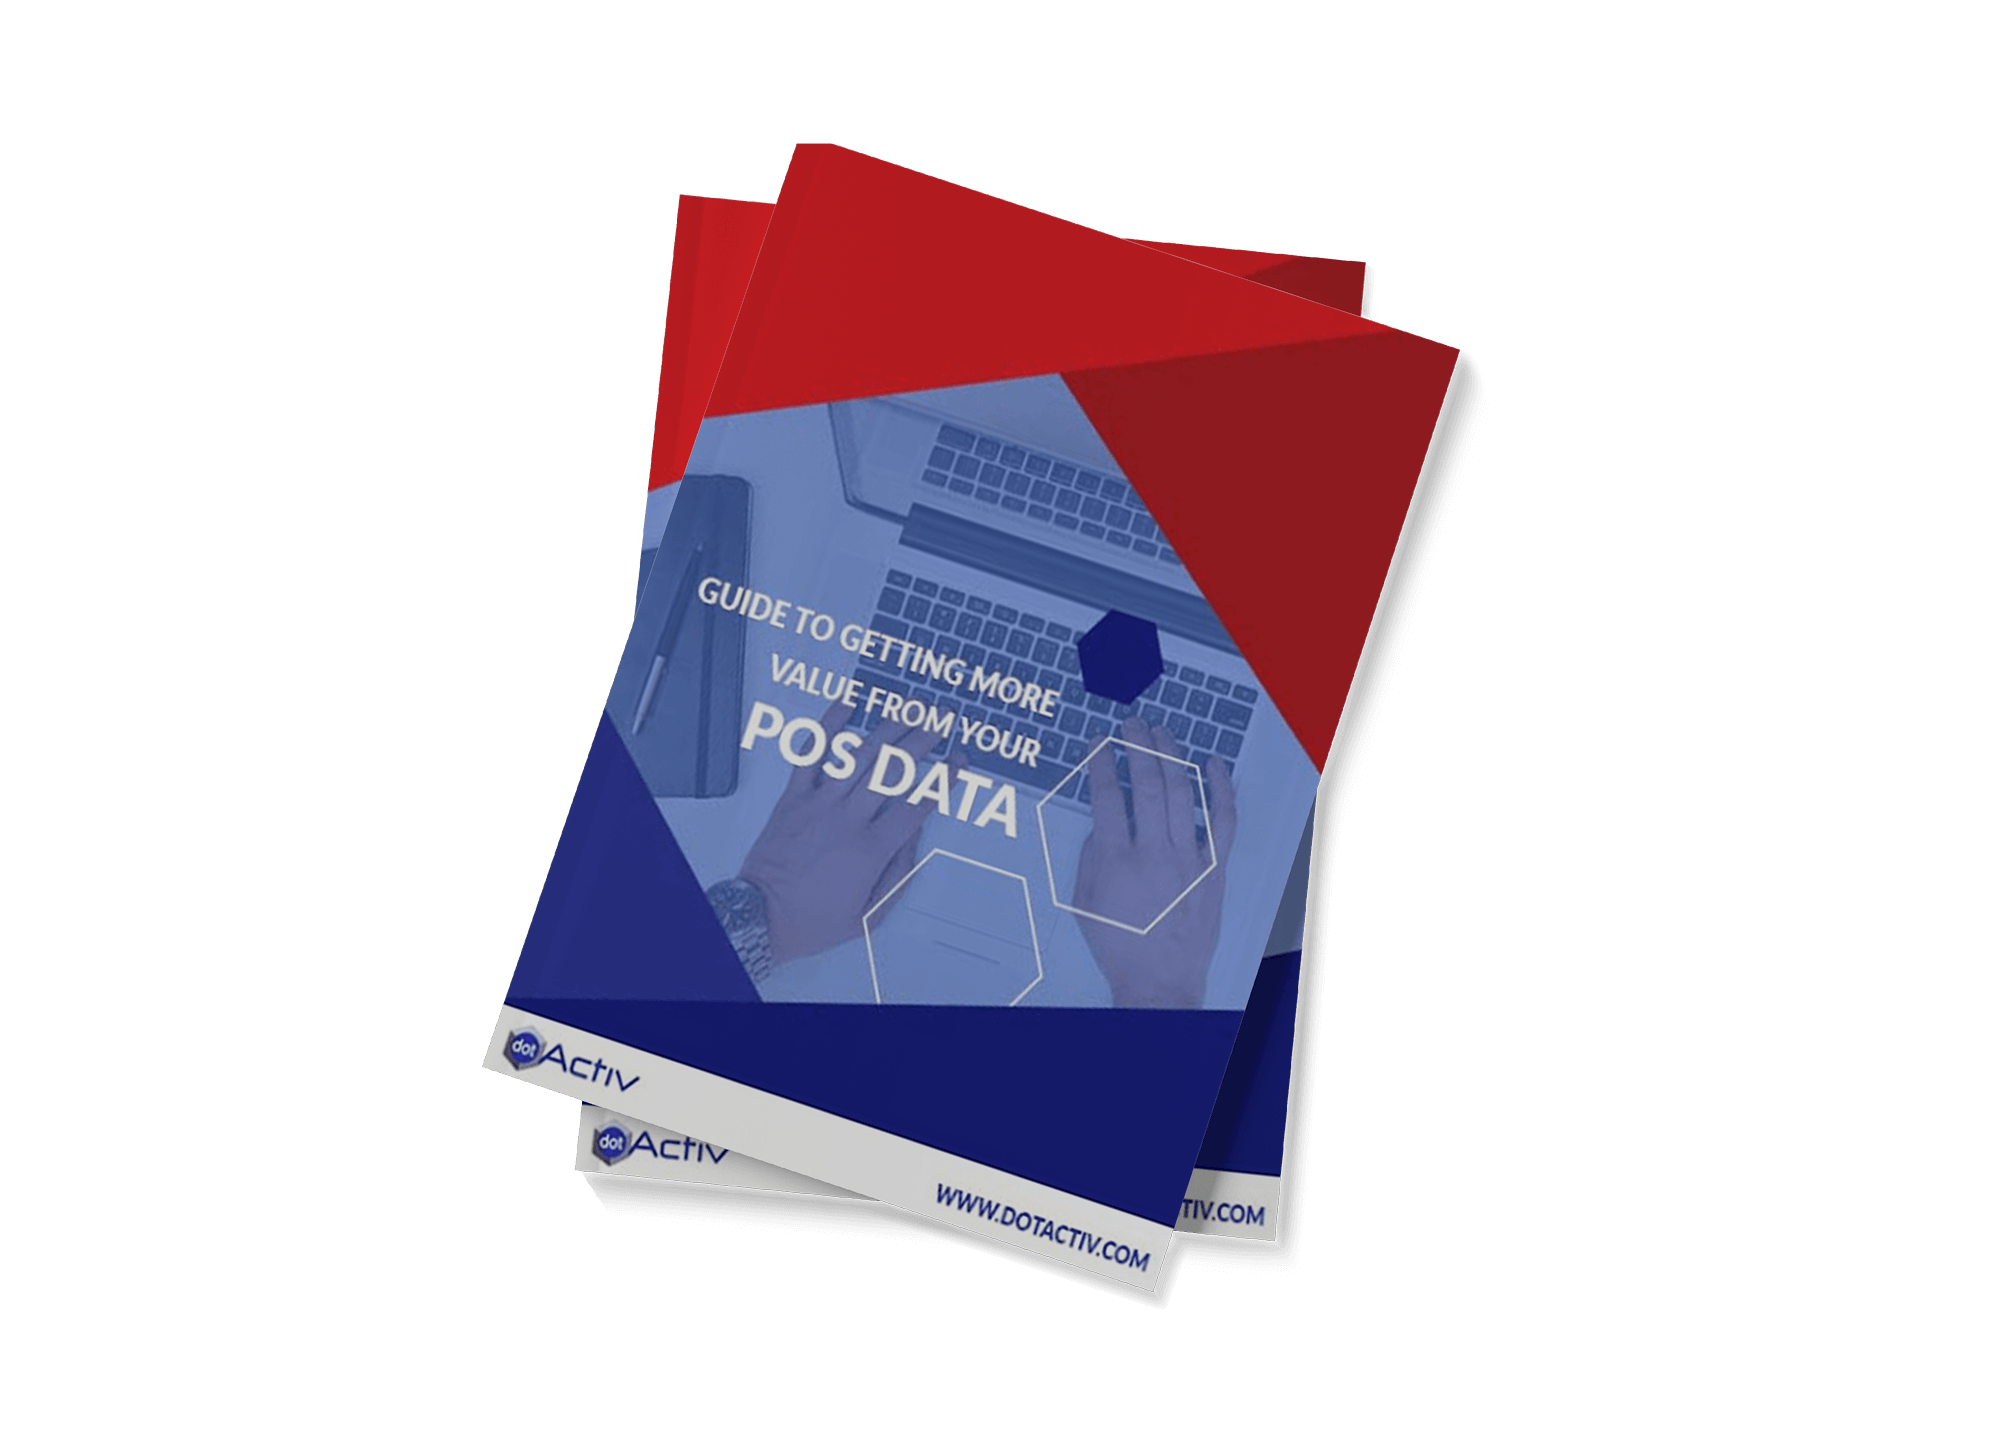 Ultimate Guide to Getting More Value From Your POS Data-2